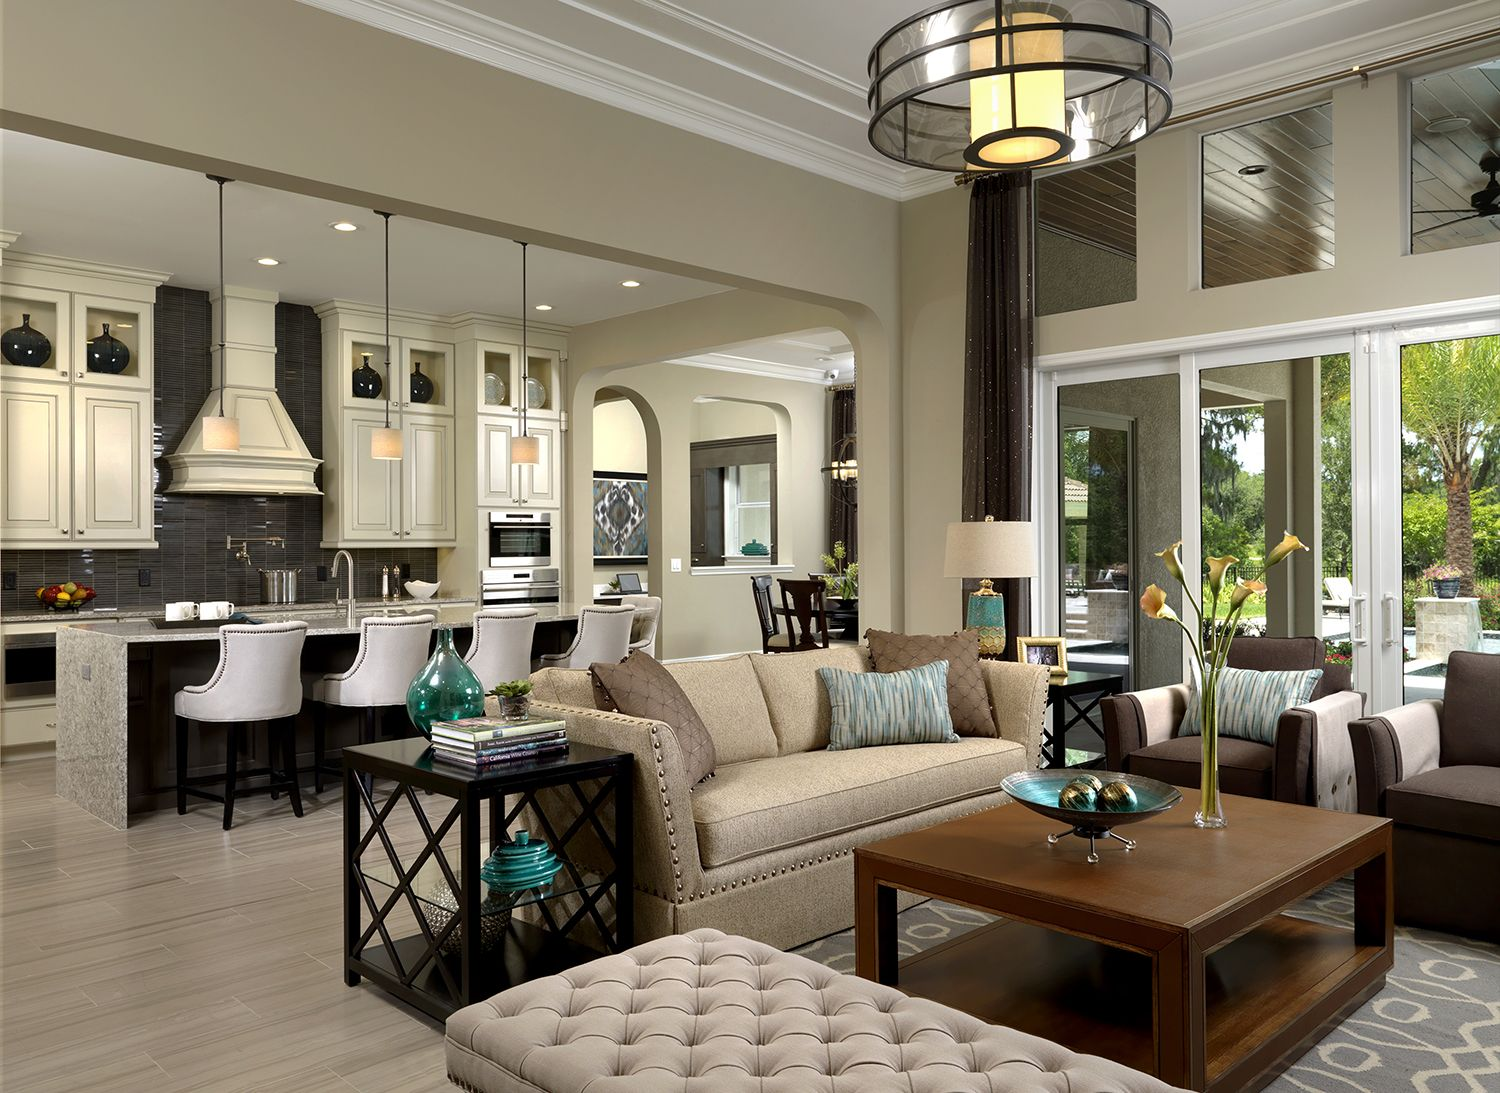 transitional style living room furniture. A True Showcase In The Transitional Style -- Featuring Thoughtful Mix Of Traditional Elements (skirted, Nailhead Sofa) With Modern Ones (clean Lined Boxy Living Room Furniture